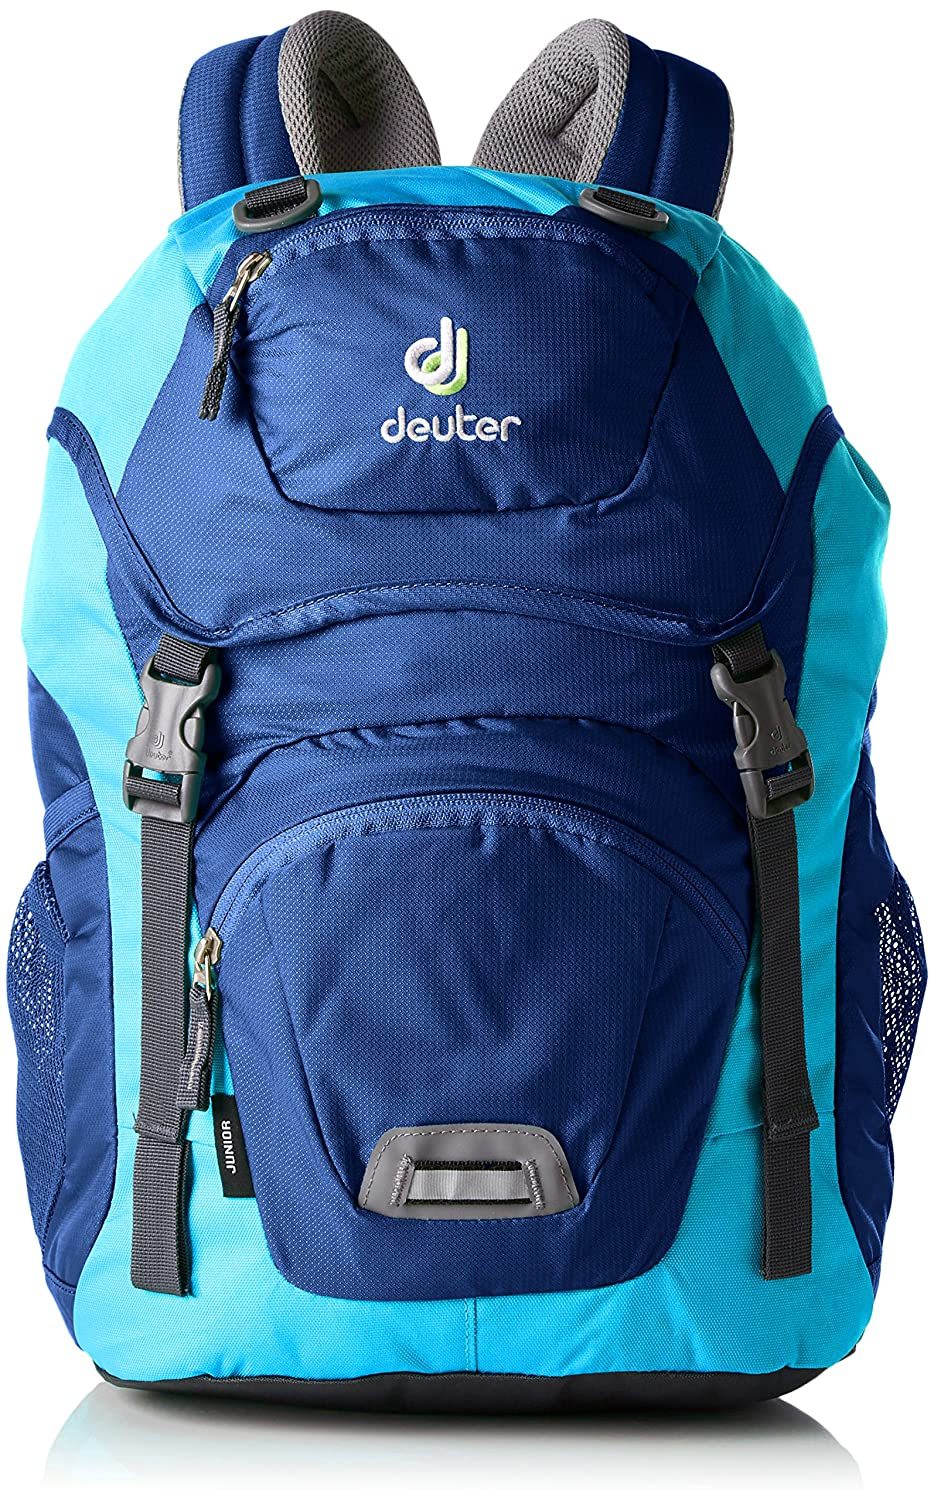 Wanderrucksack Kinder - DEUTER JUNIOR Rucksack - Kinder Backpack